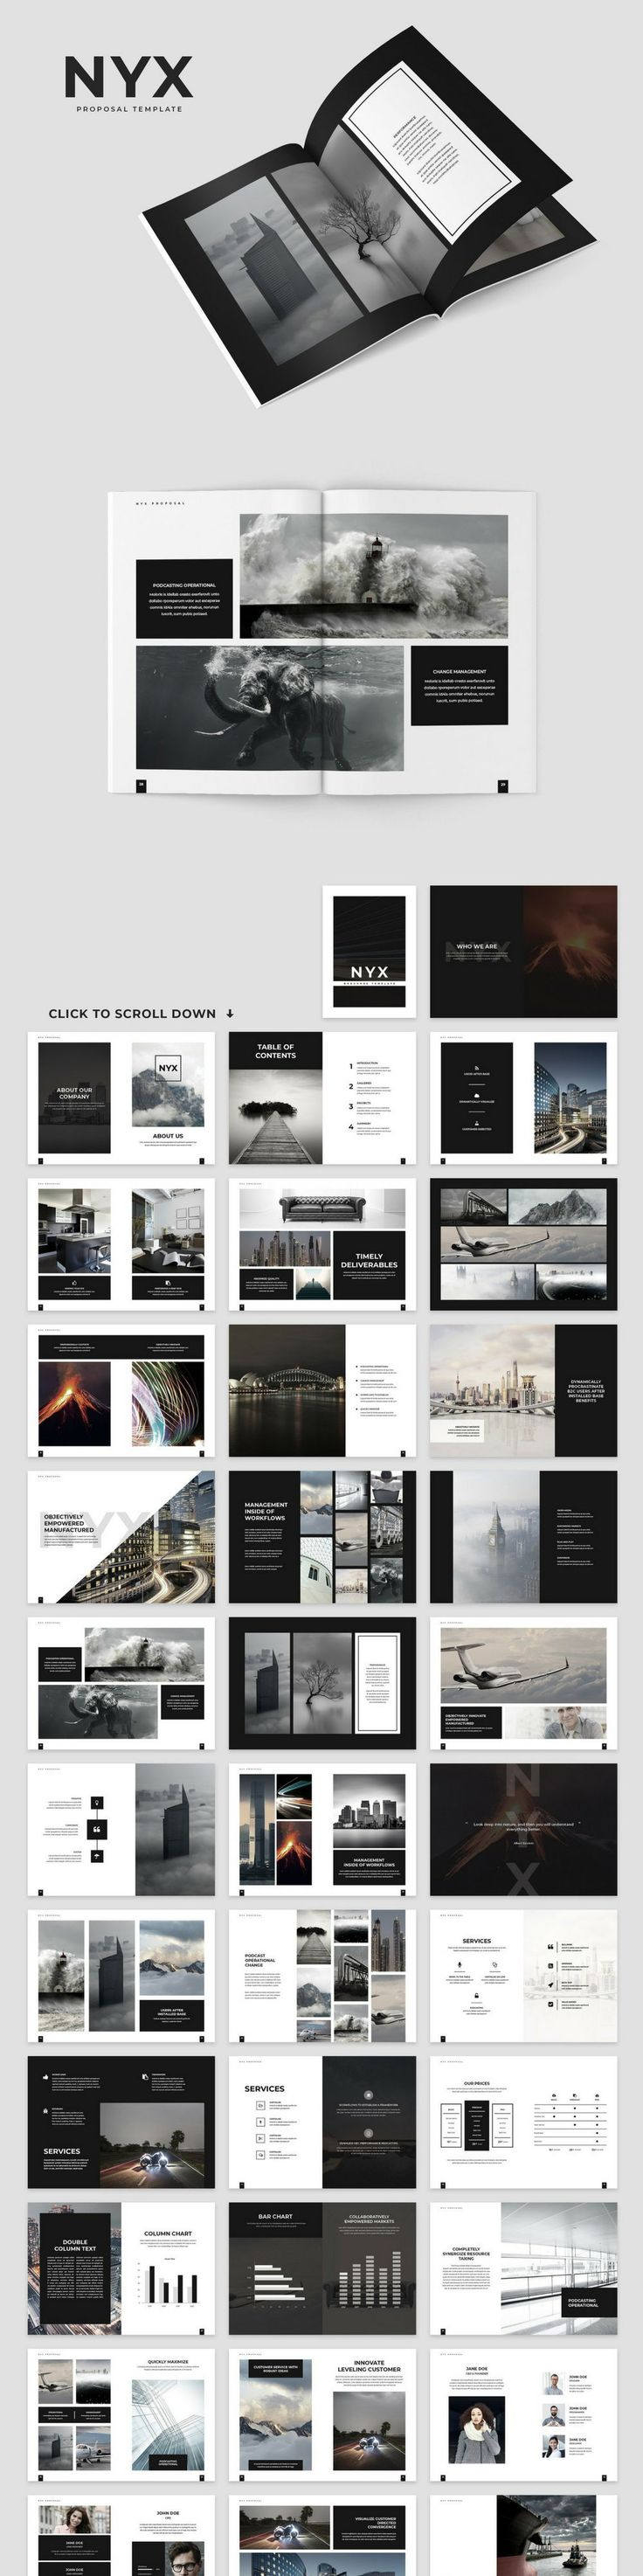 Nyx Proposal Template 120 best Portfolio images